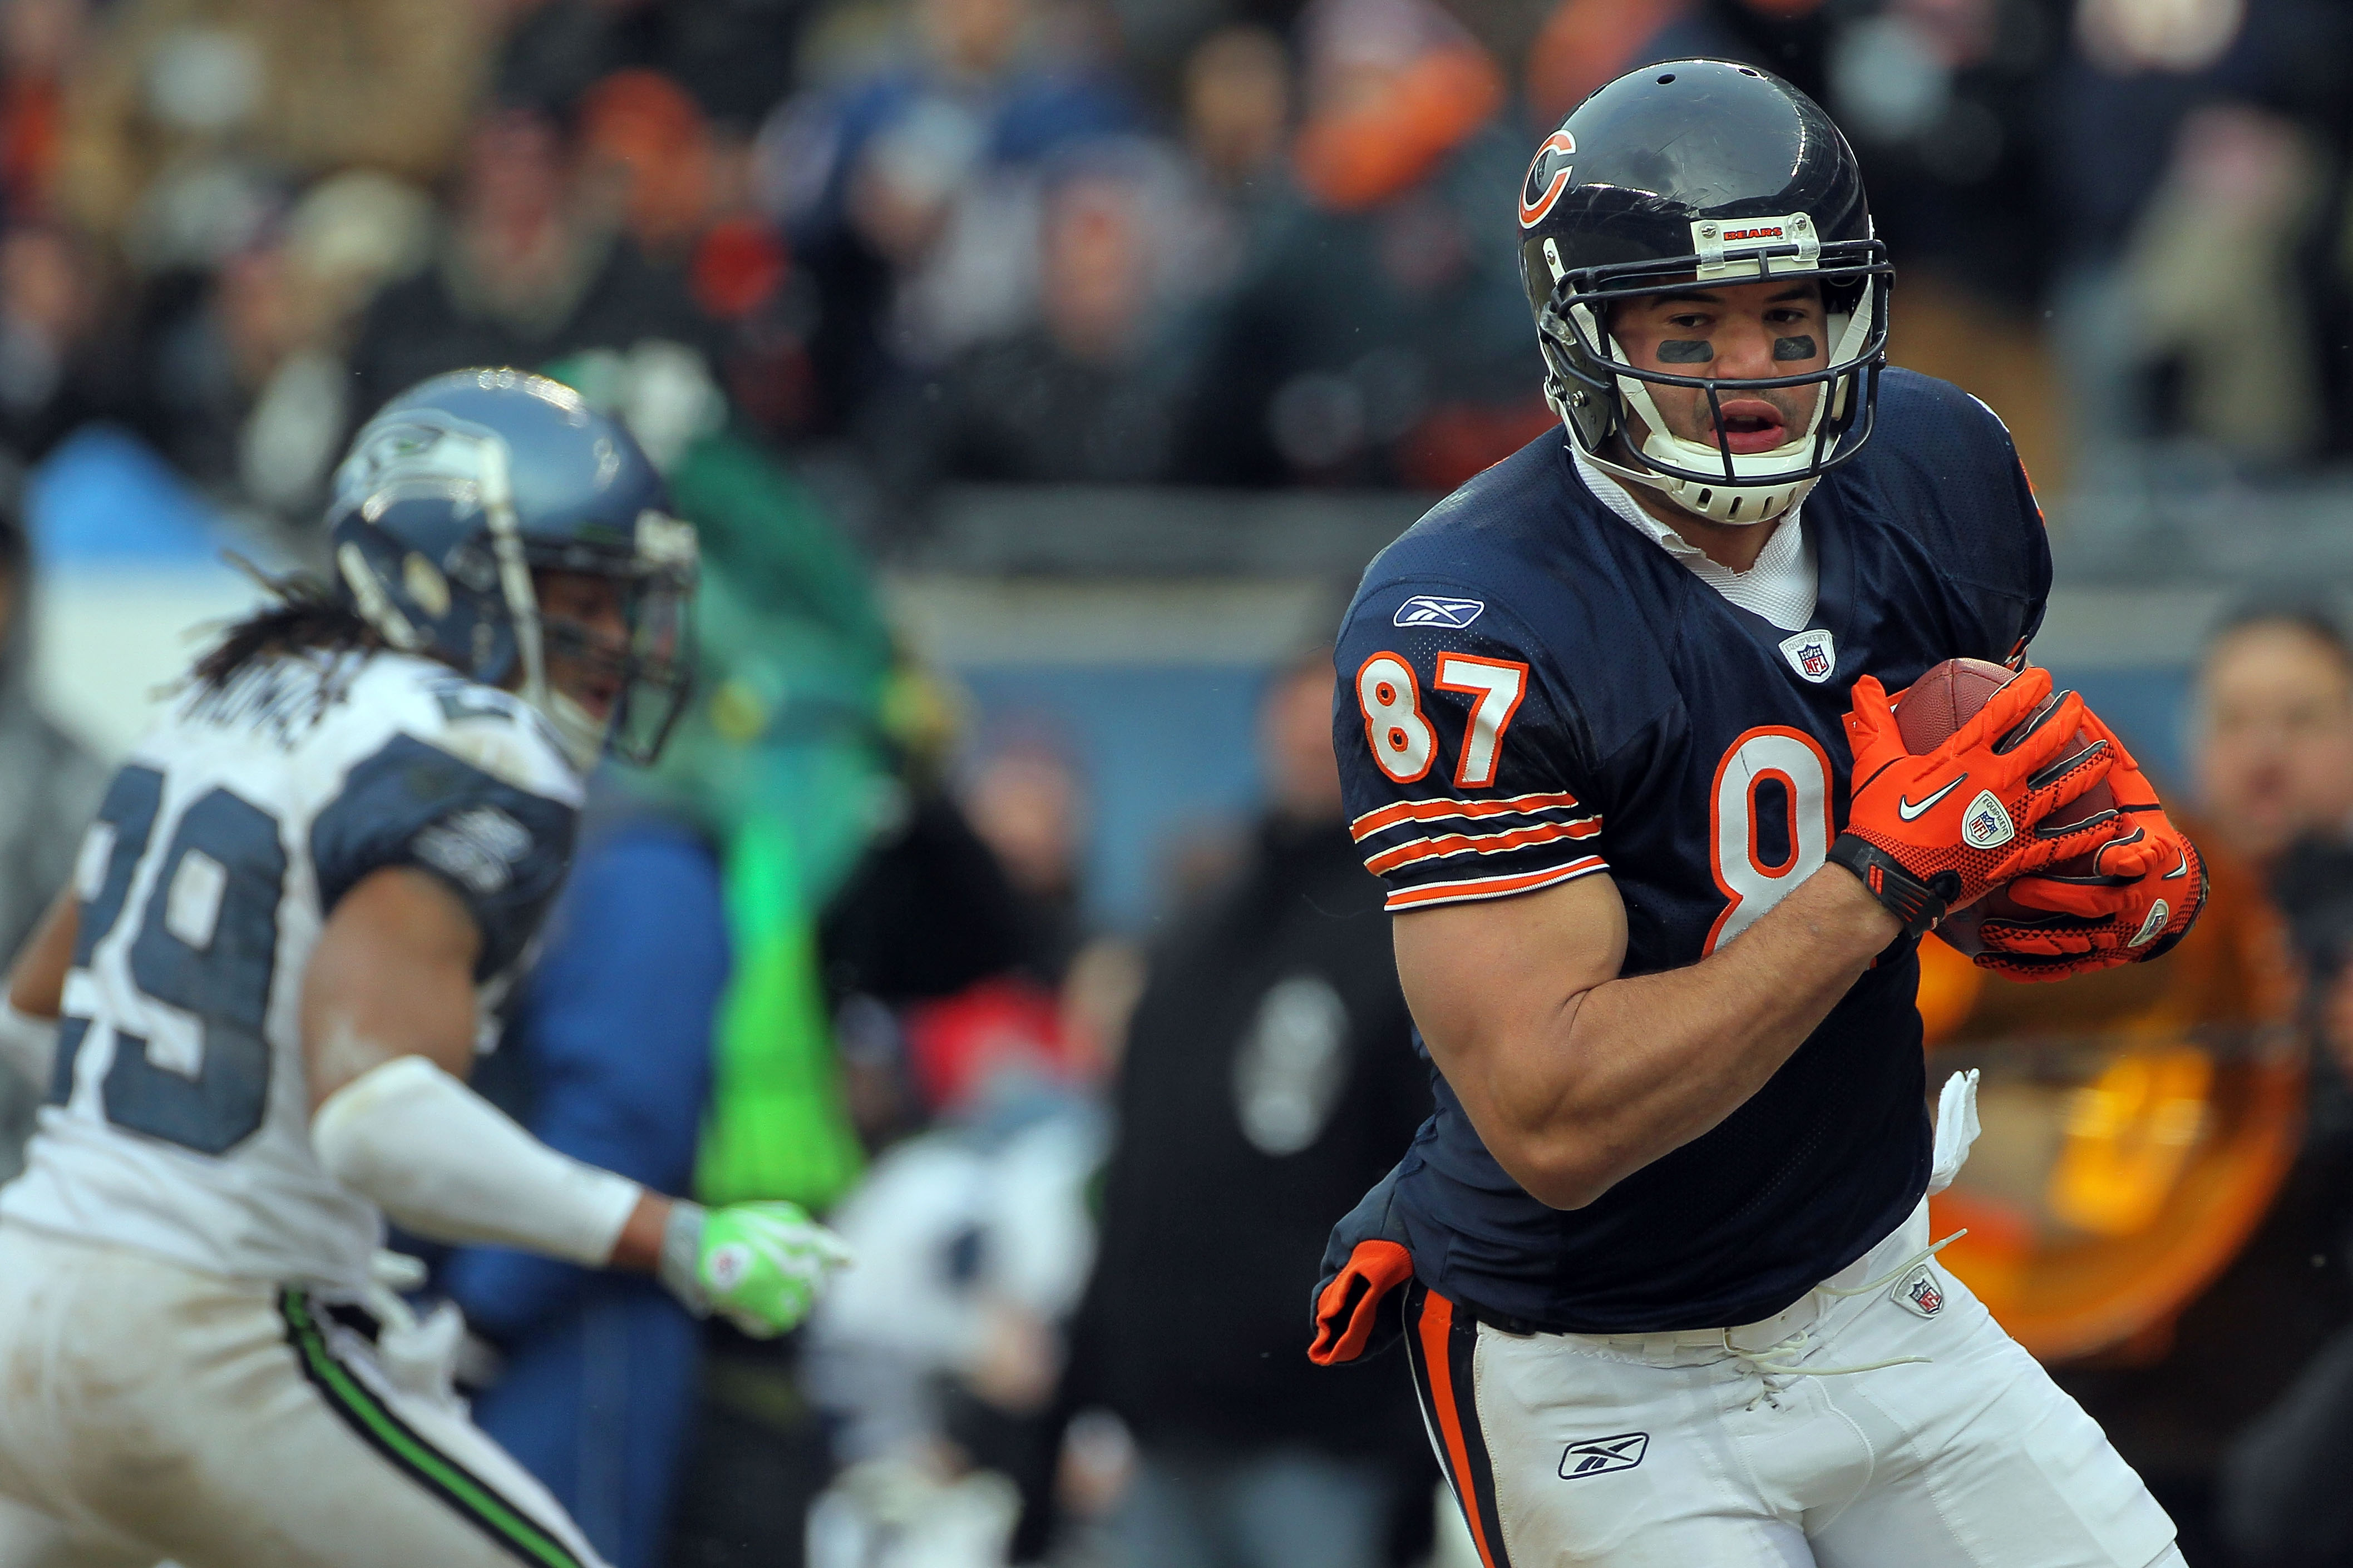 CHICAGO, IL - JANUARY 16:  Tight end Kellen Davis #87 of the Chicago Bears catches a 39-yard touchdown in the fourth quarter against the Seattle Seahawks in the 2011 NFC divisional playoff game at Soldier Field on January 16, 2011 in Chicago, Illinois.  (